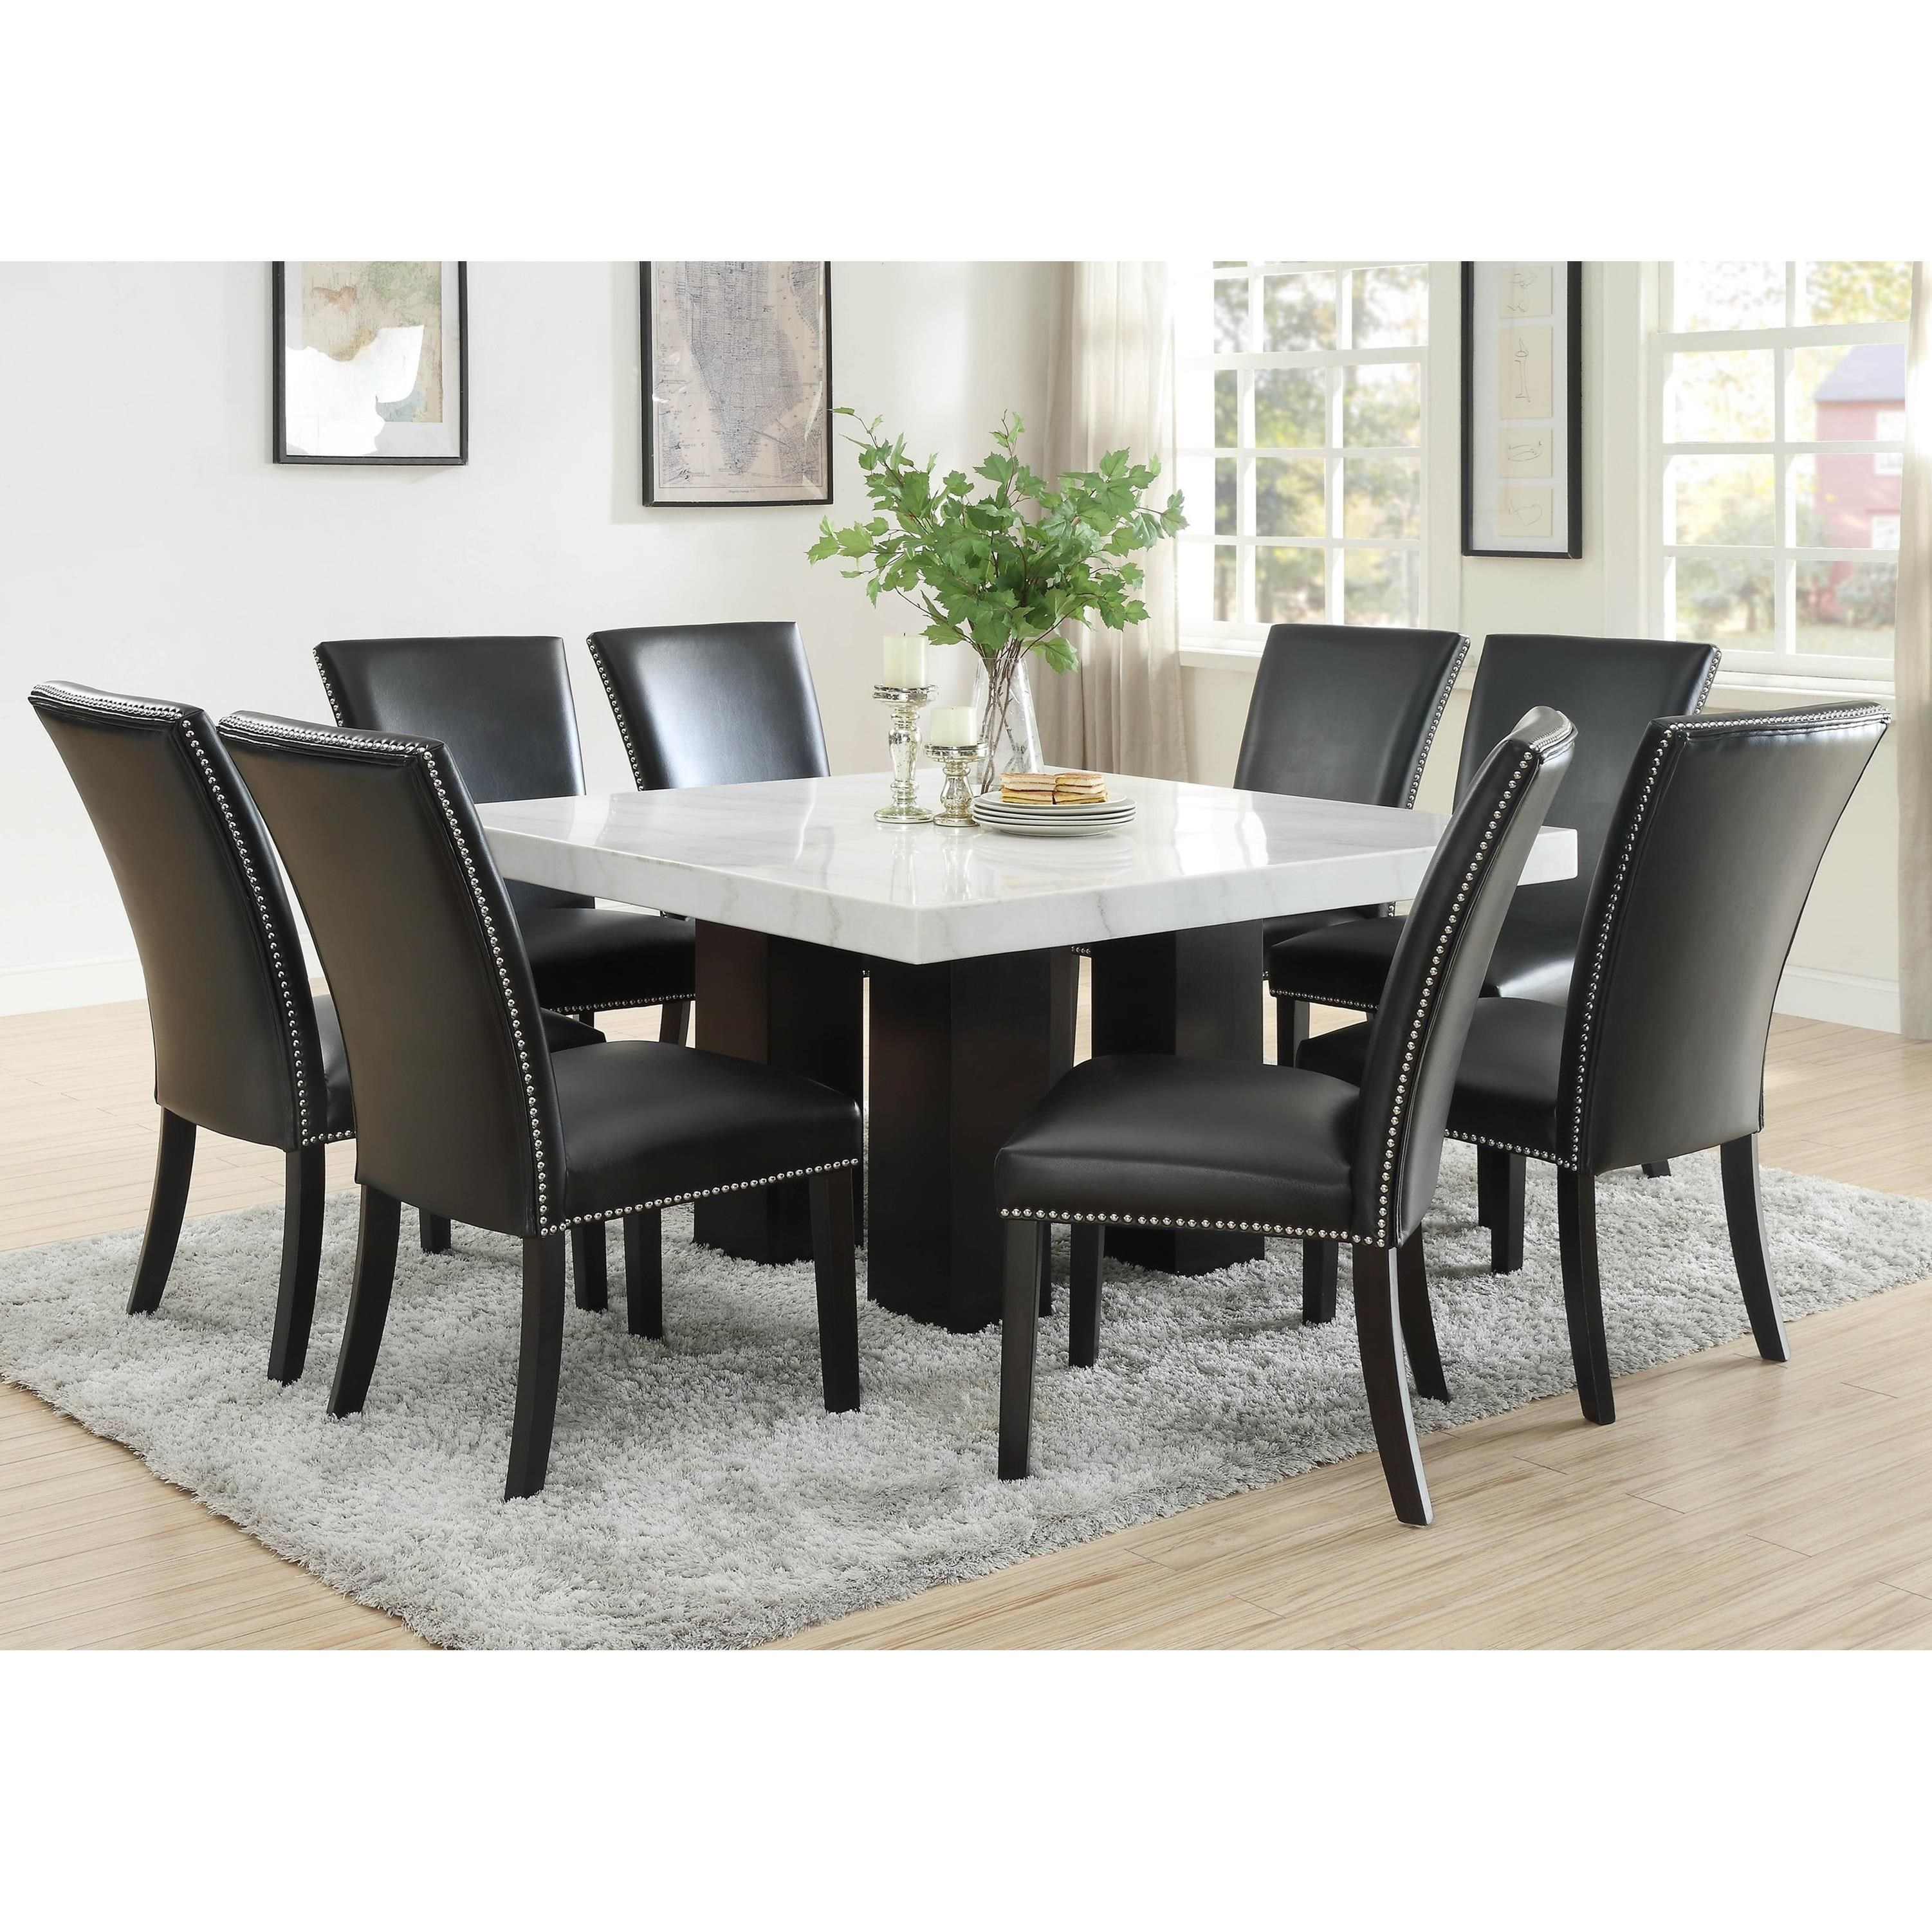 steve silver camila 9 piece dining set with marble table top rh wayside furniture com